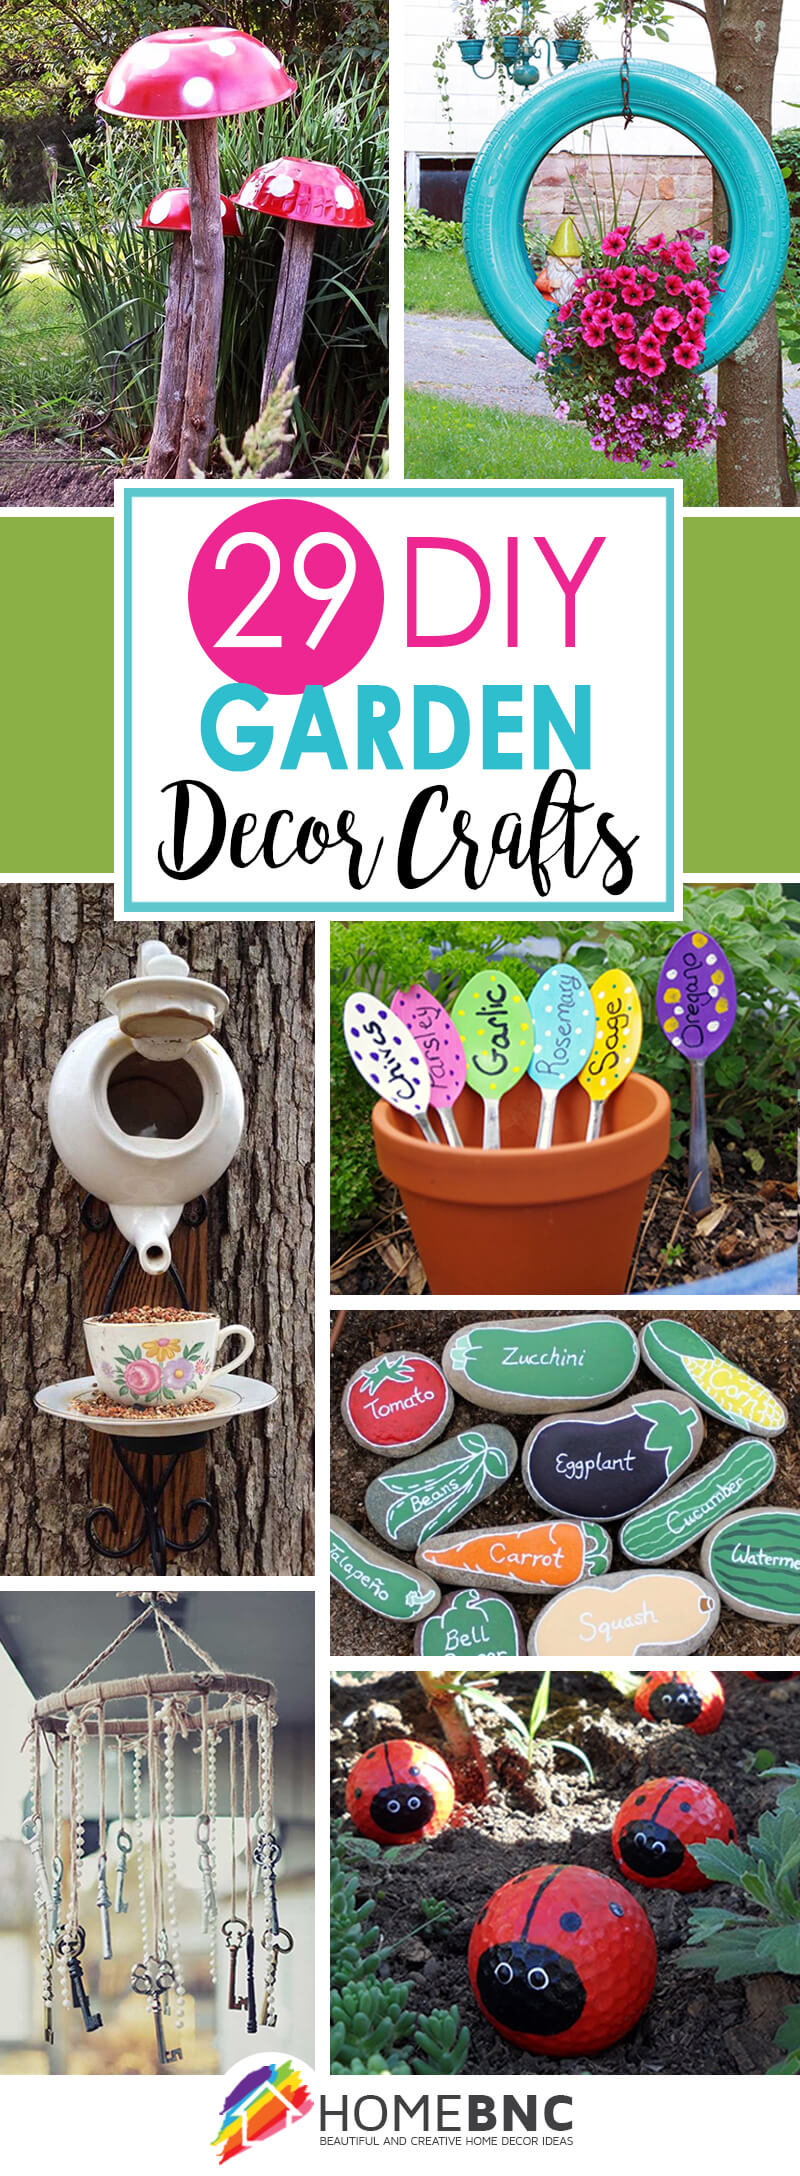 29 diy garden decorations youll love - Diy Garden Decor